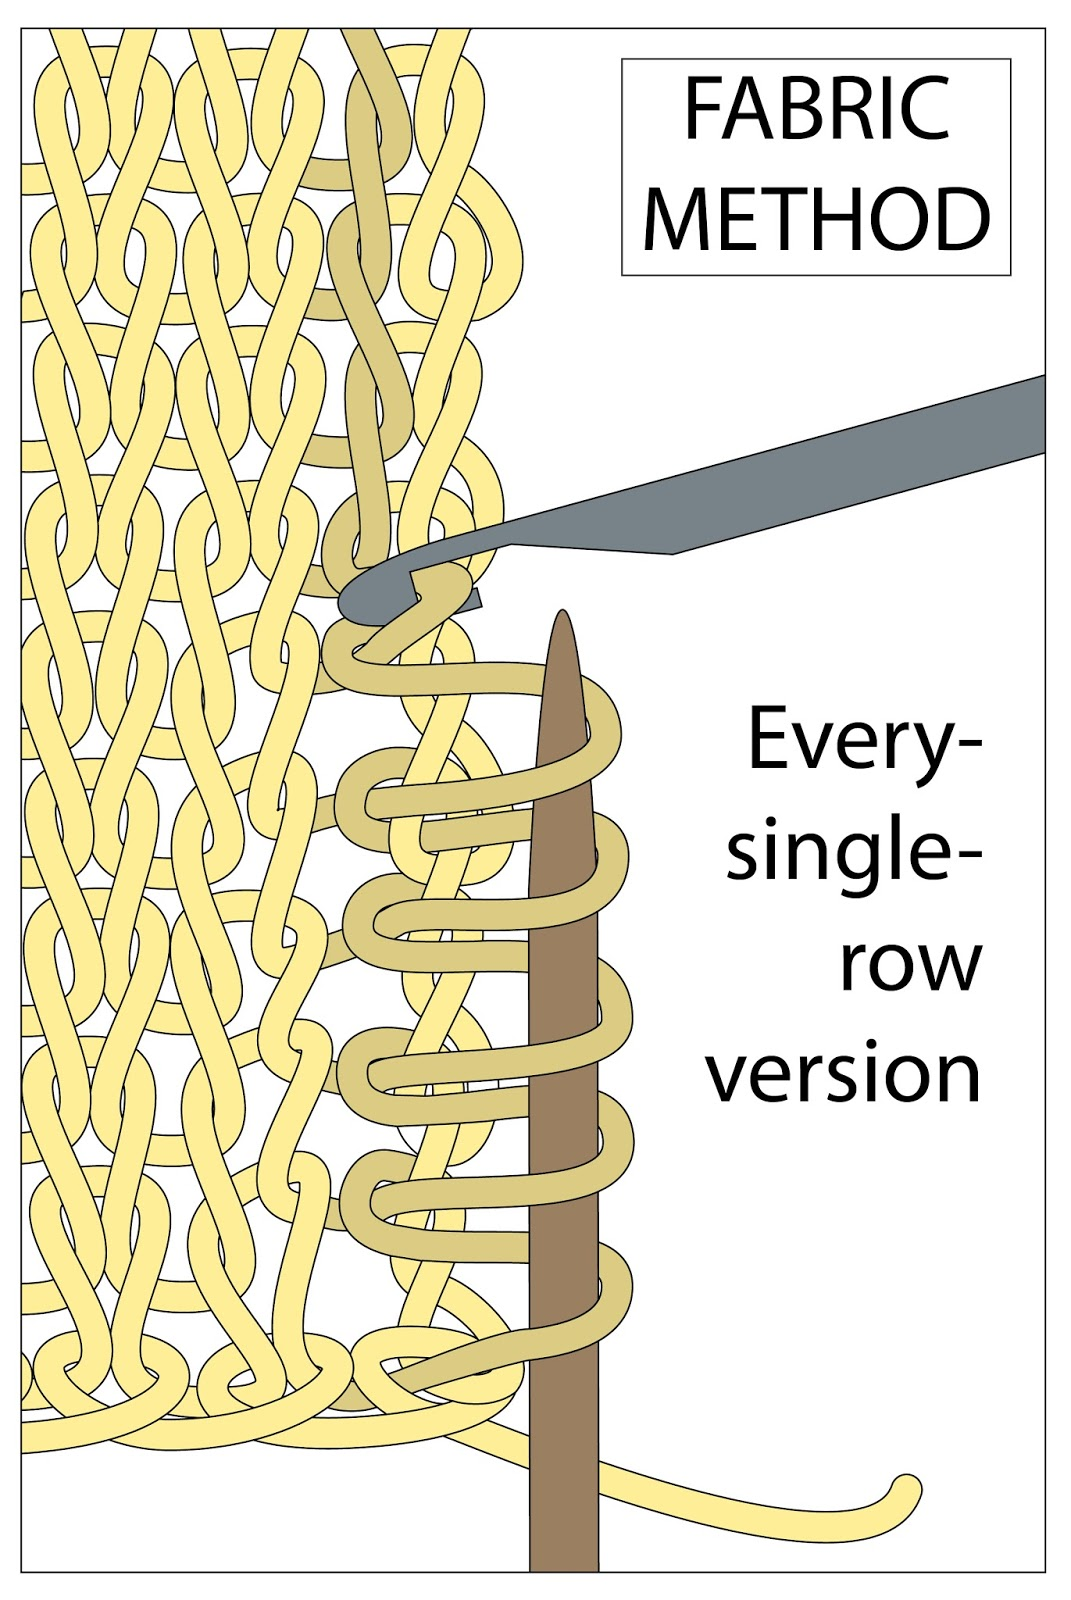 Picking Up Stitches When Knitting : TECHknitting: Picking up stitches along a selvedge